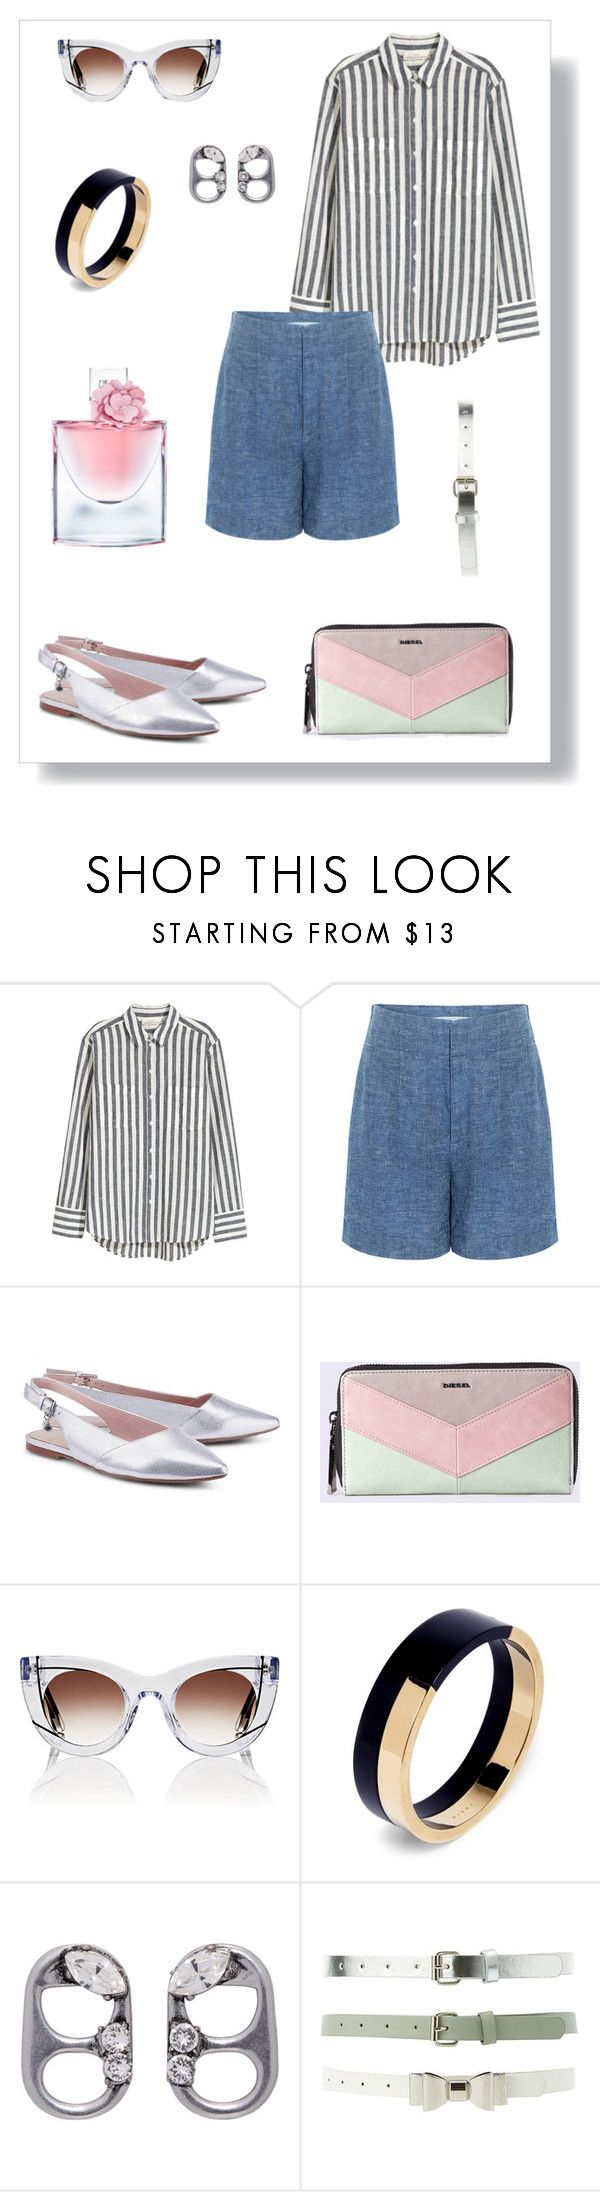 """""""№ 483"""" by tigrpuh ❤ liked on Polyvore featuring 10 Crosby Derek Lam, Diesel, Thierry Lasry, Marni, Marc Jacobs, Charlotte Russe and Lancôme"""